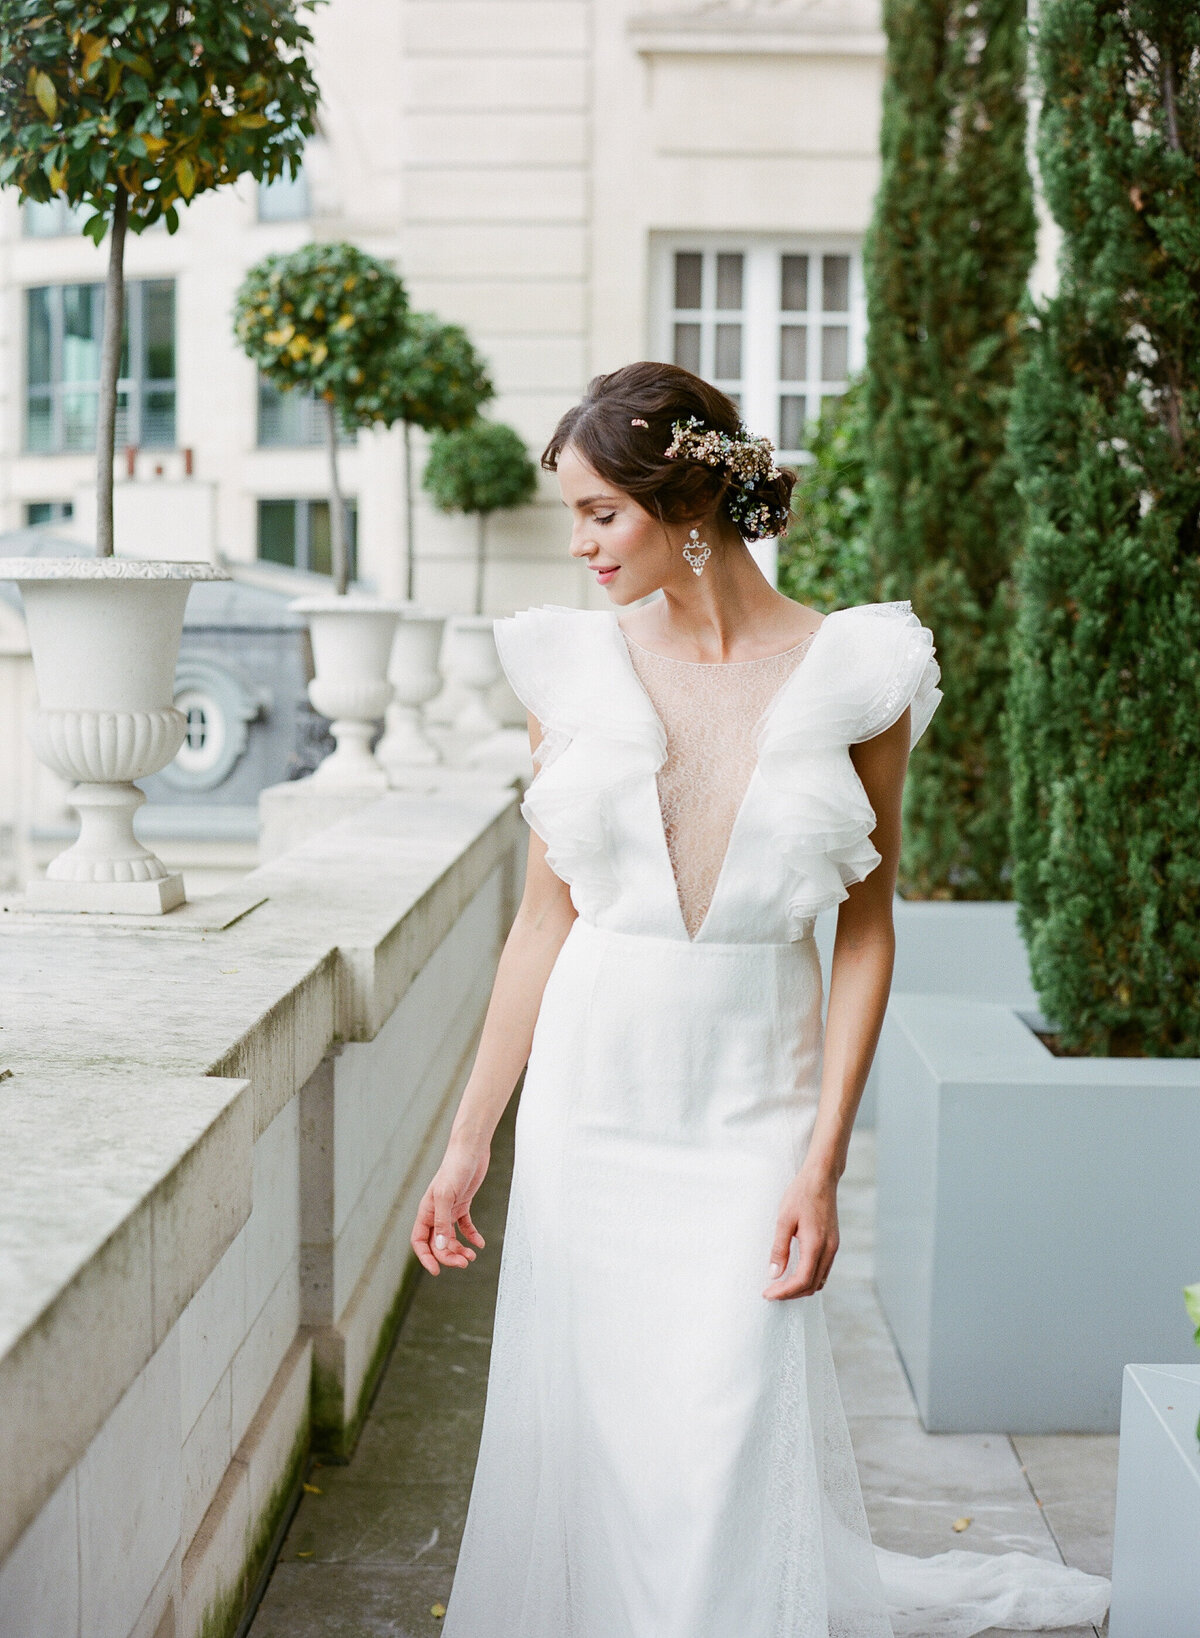 Wedding-Inspiration-Shangri-La-Paris-22